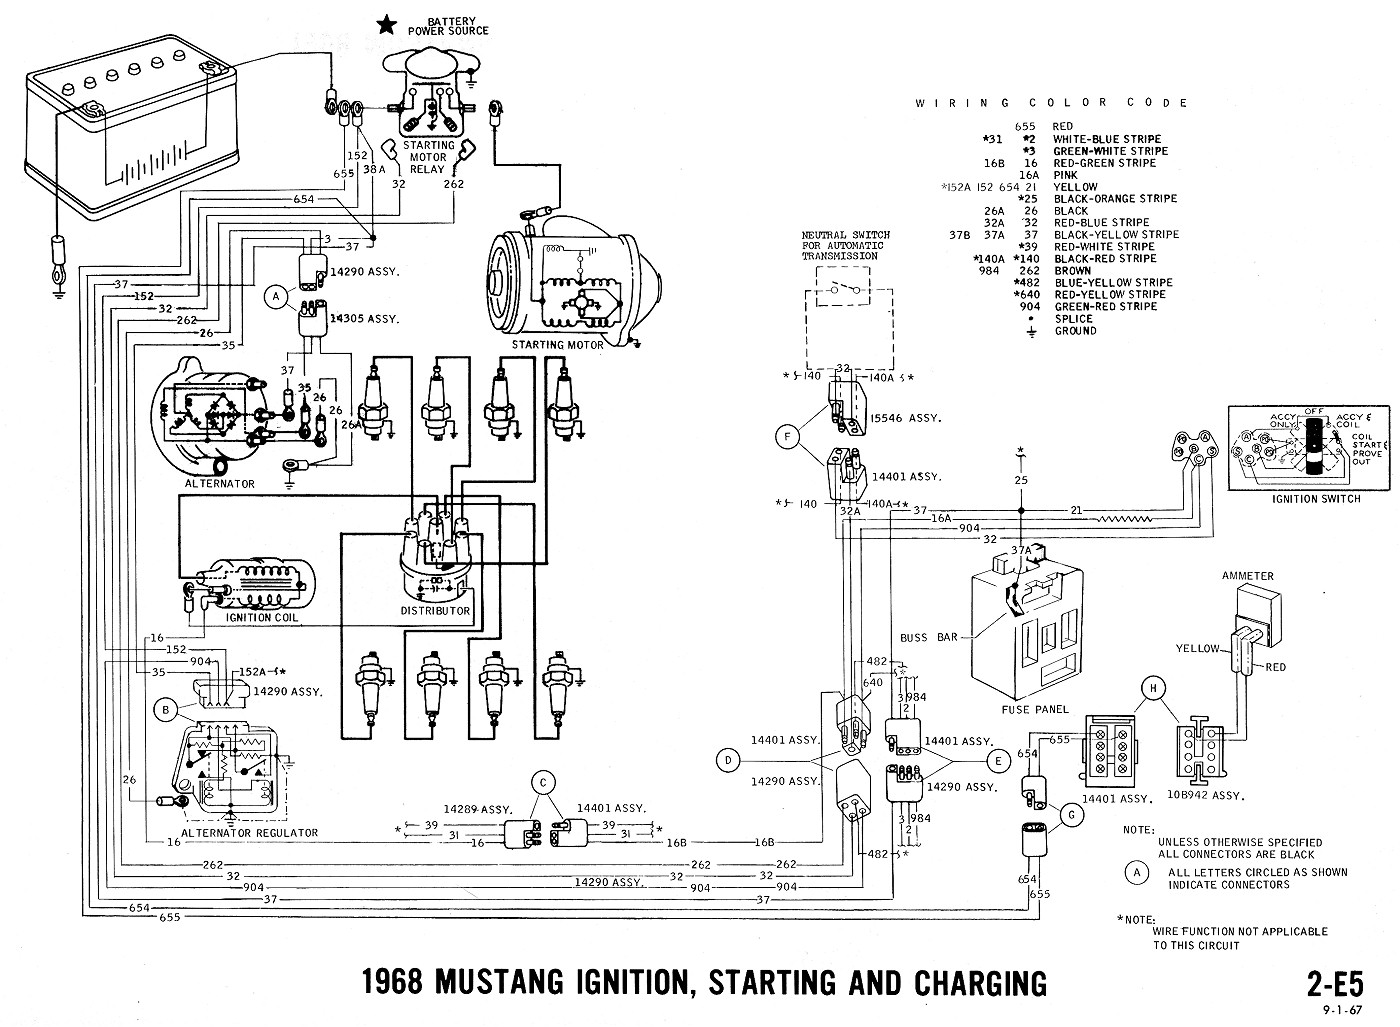 hight resolution of 1968 mustang voltage regulator wiring diagram wiring diagram third john deere ignition wiring diagram ford mustang 12 volt solenoid wiring diagram